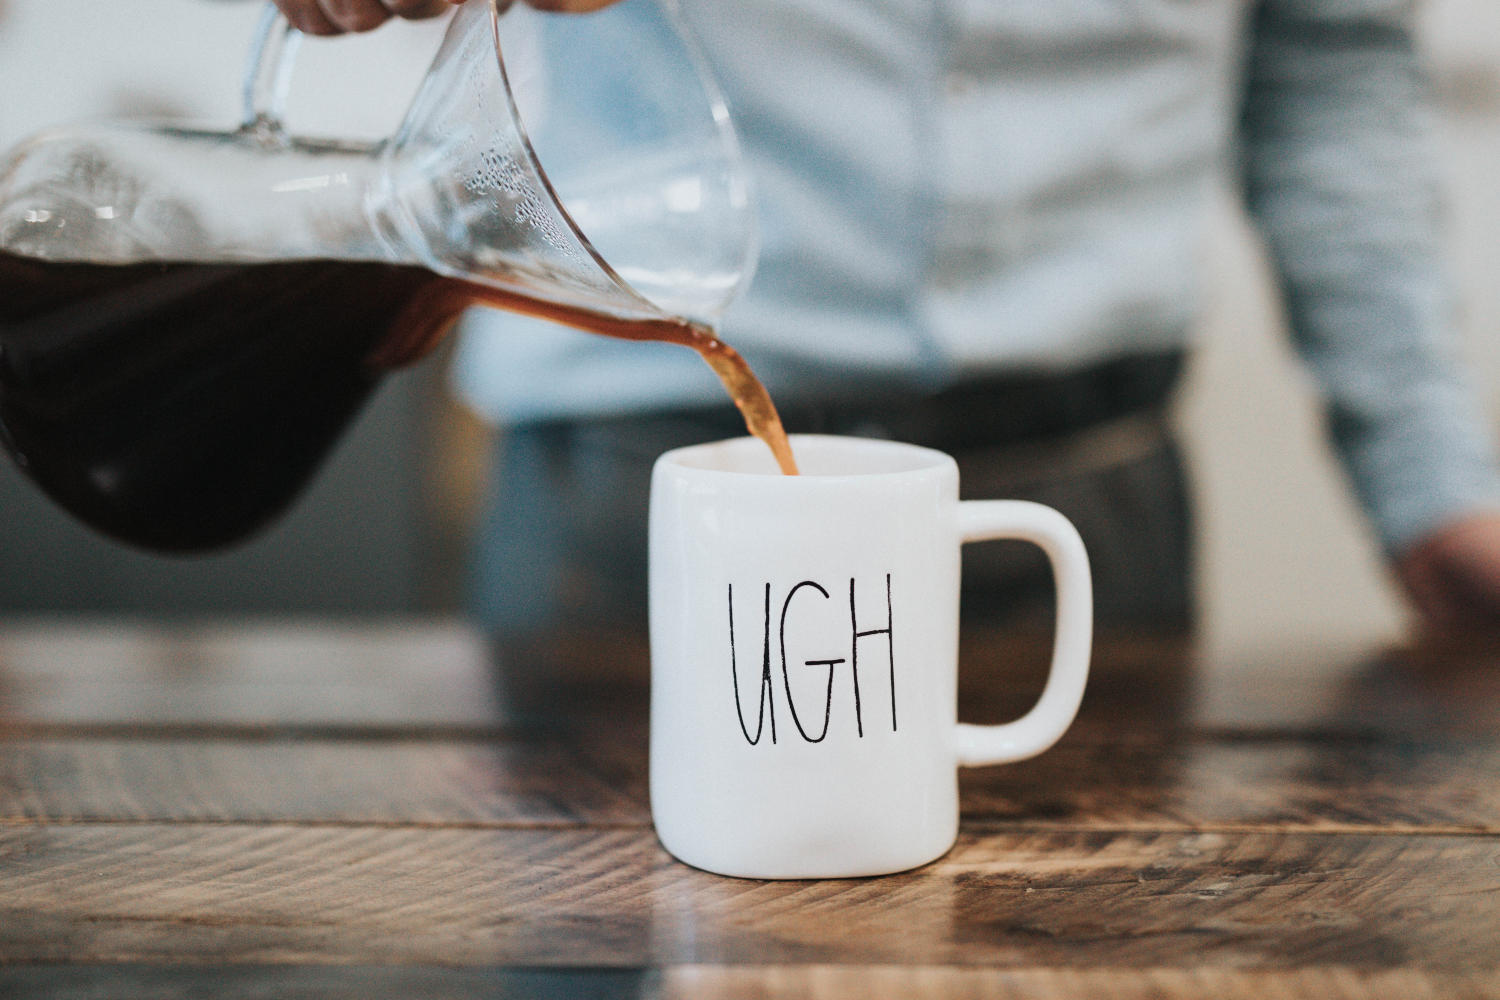 """Man pouring coffee into a mug with """"UGH"""" writting on it"""